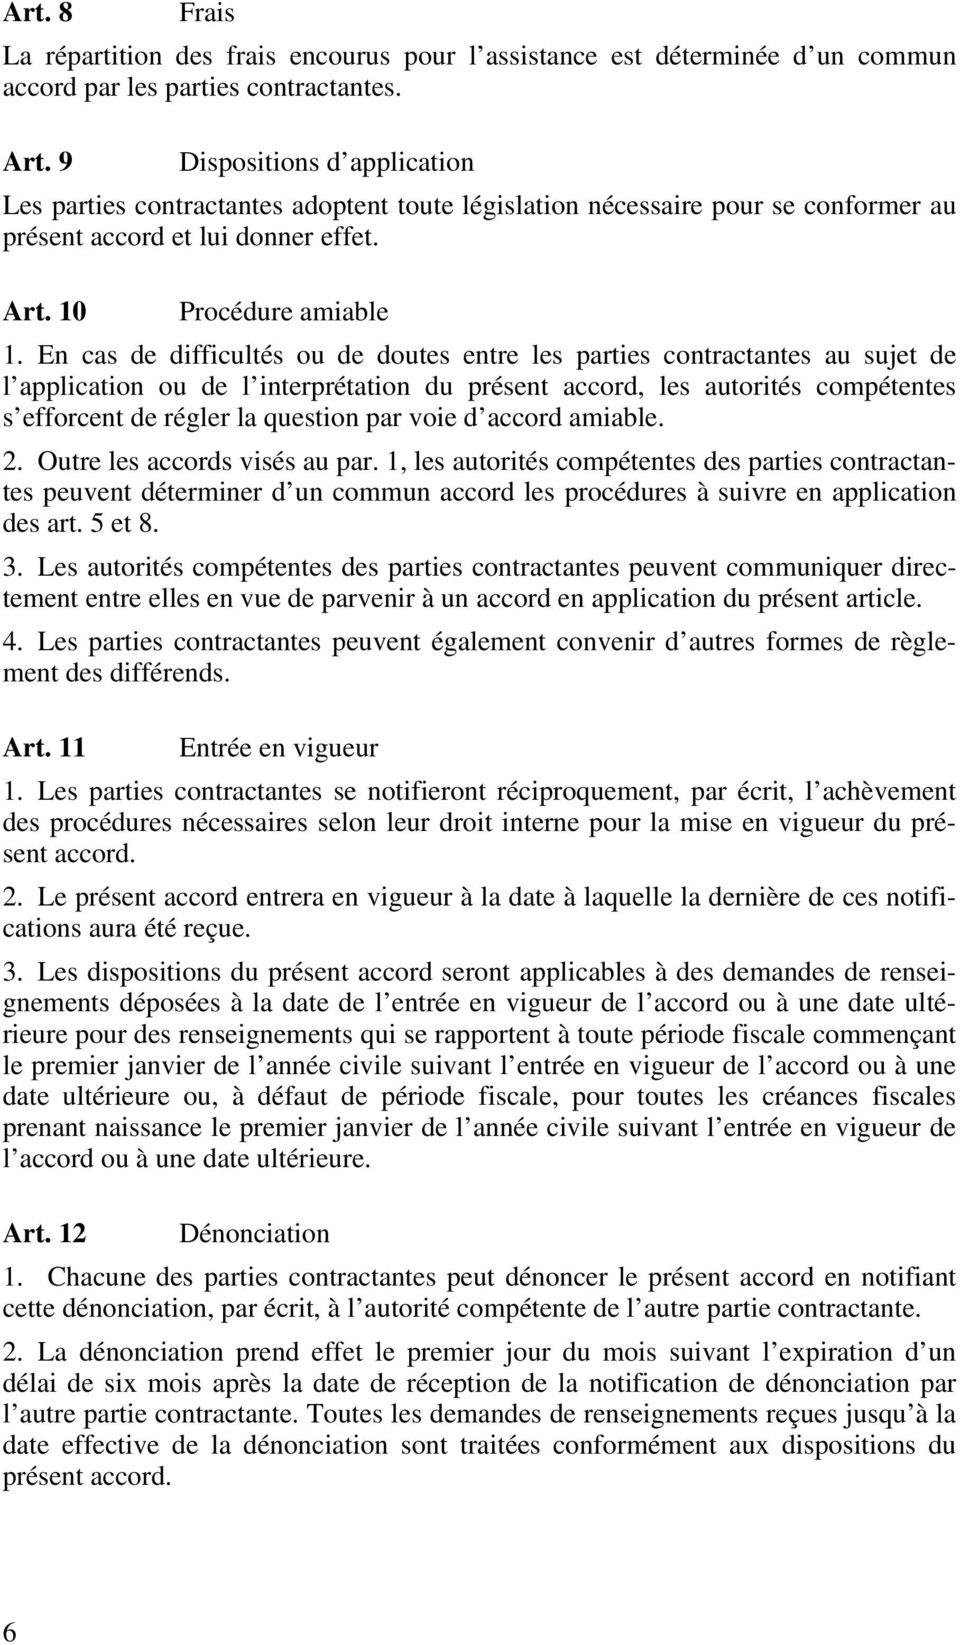 En cas de difficultés ou de doutes entre les parties contractantes au sujet de l application ou de l interprétation du présent accord, les autorités compétentes s efforcent de régler la question par